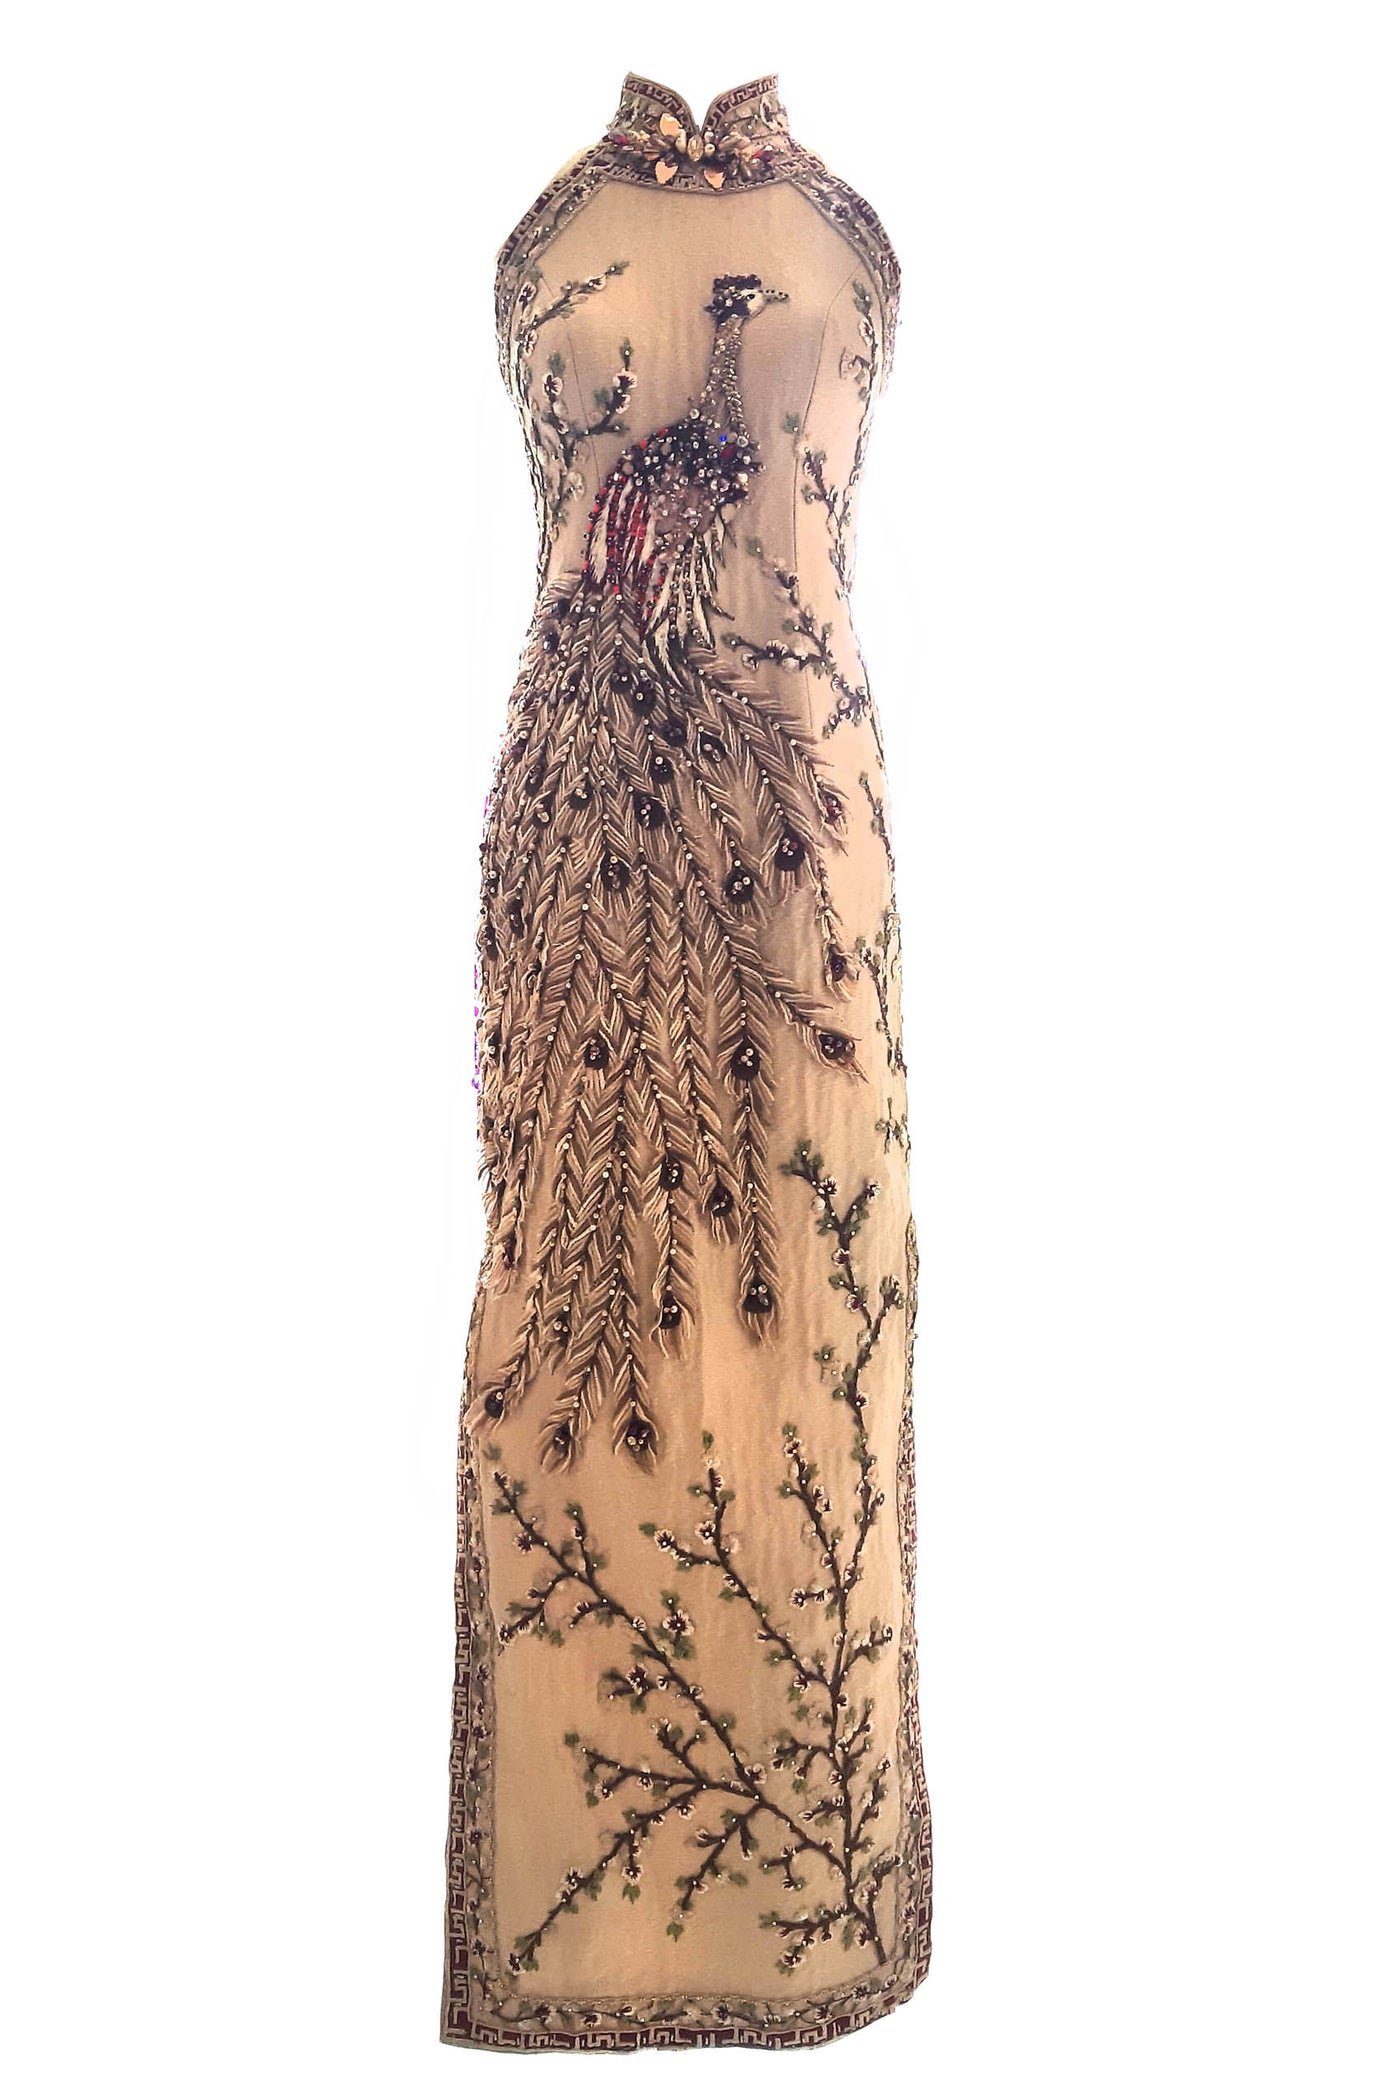 Rent : Private Label - Nude Phoenix Cheongsam Gown